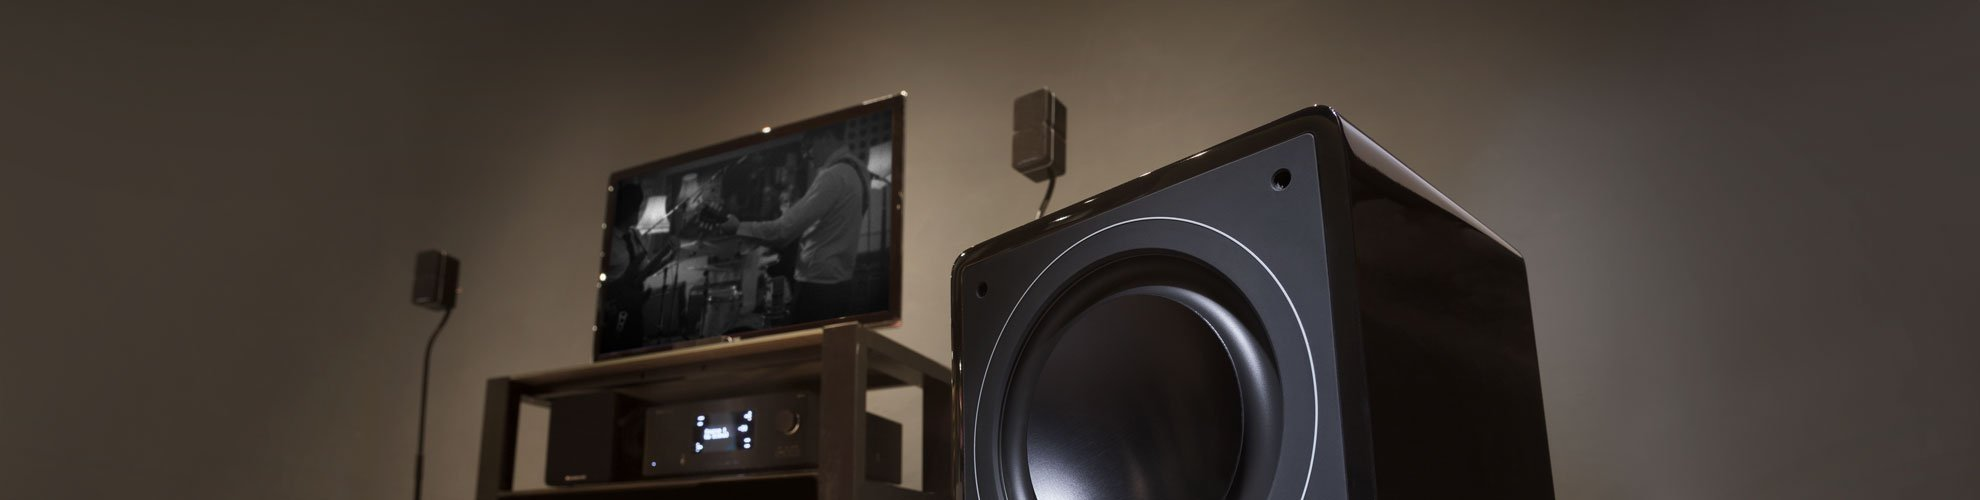 Top 10 Films to Show Off your Home Cinema Speakers